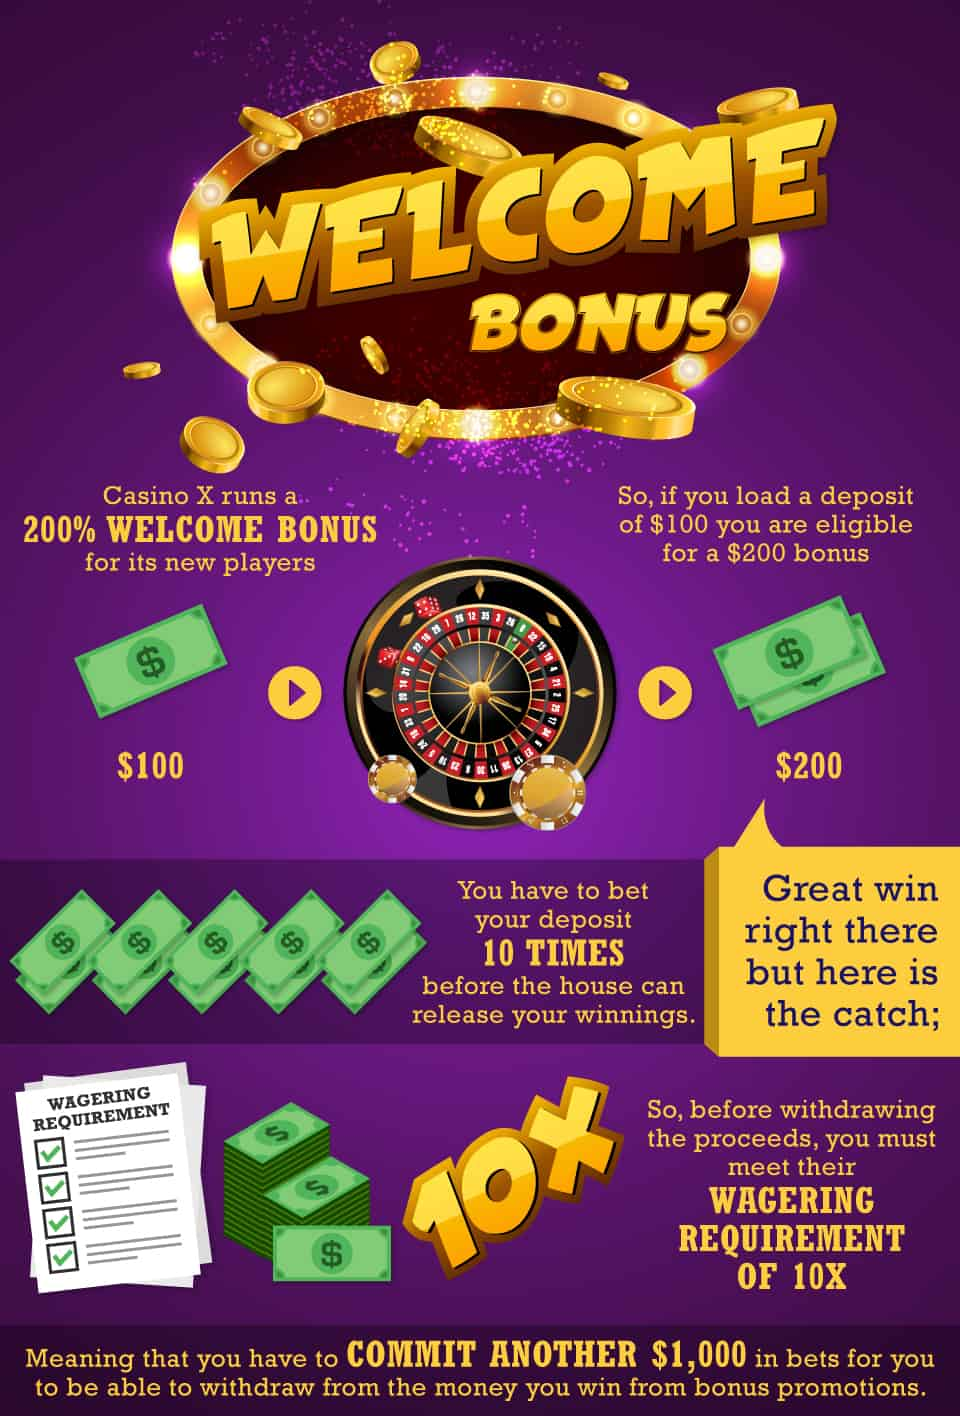 wagering requirements